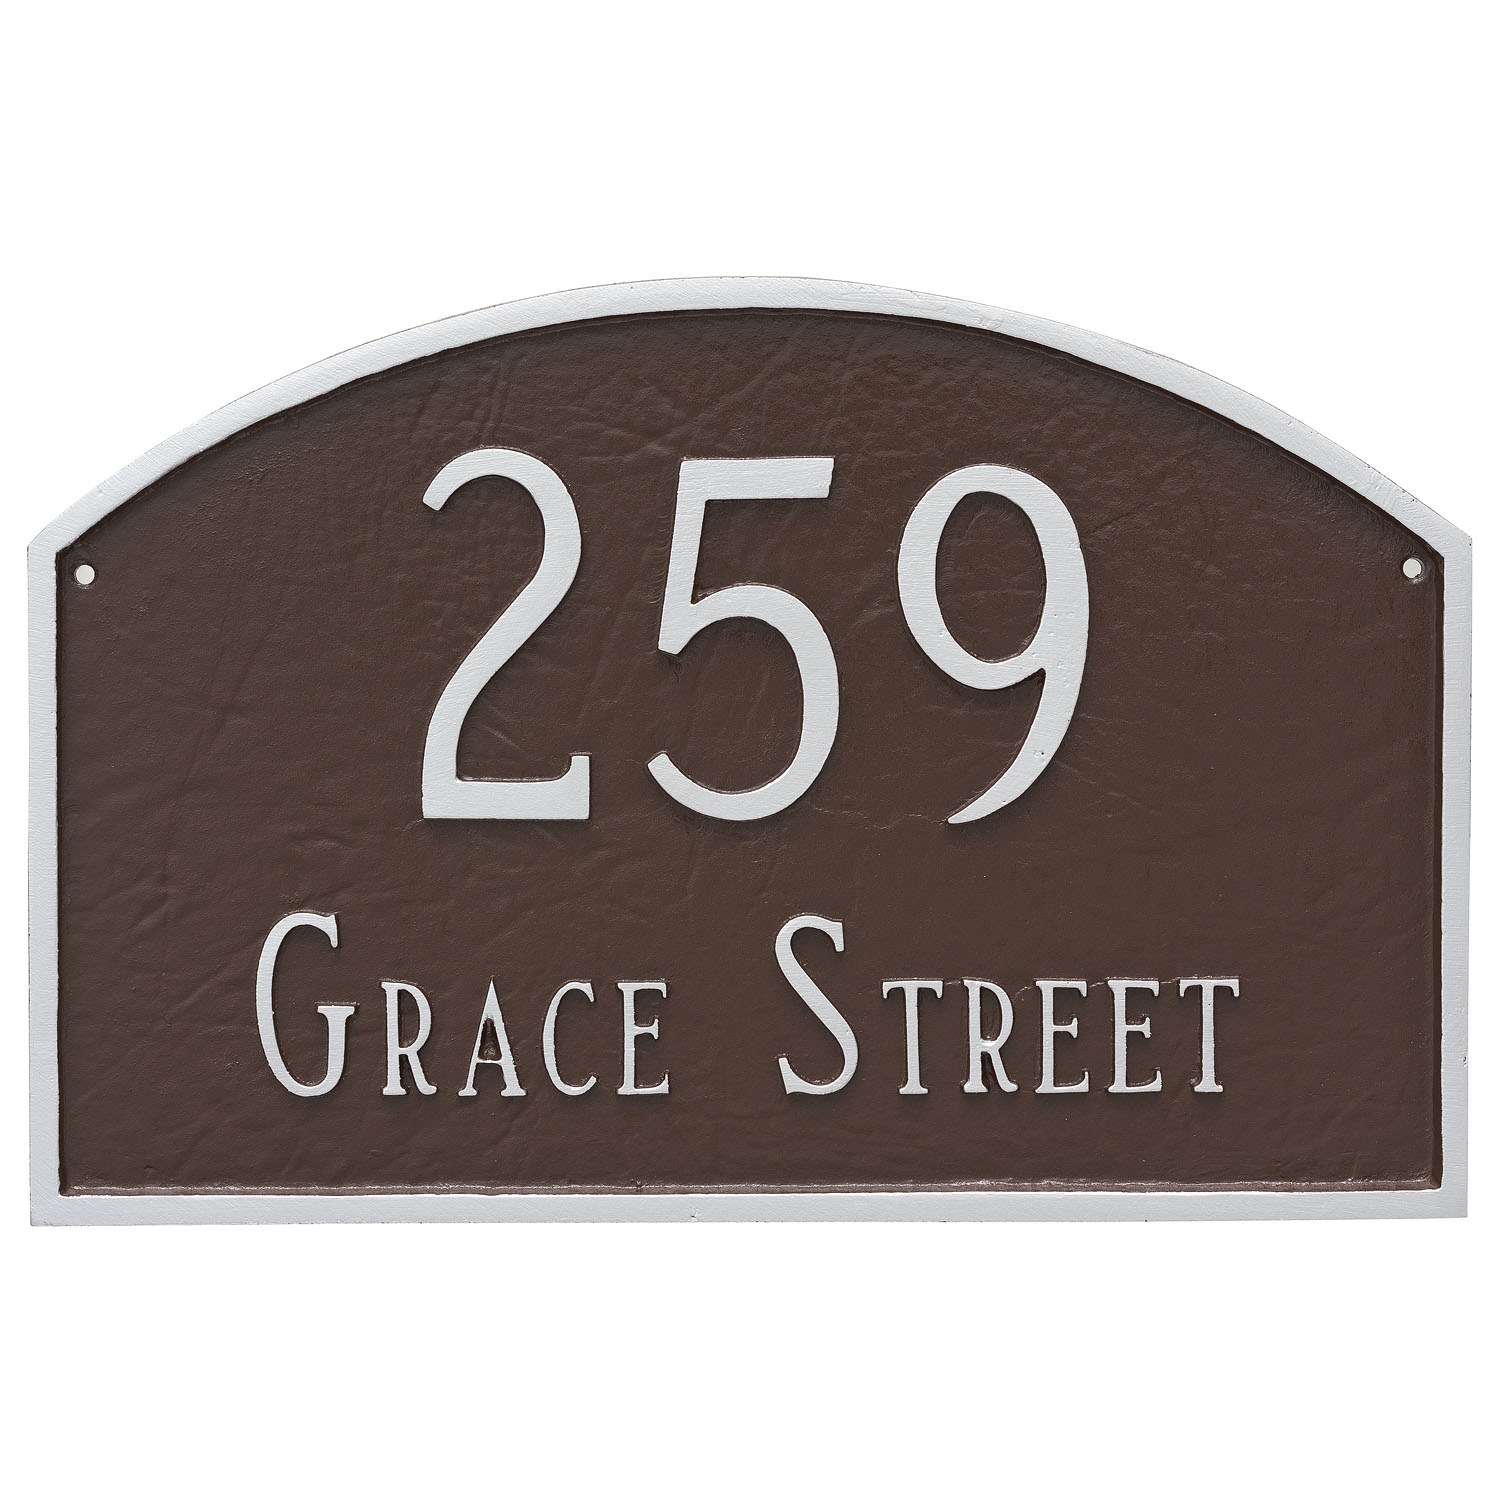 Prestige Arch Address Plaque - Large - 2 Line